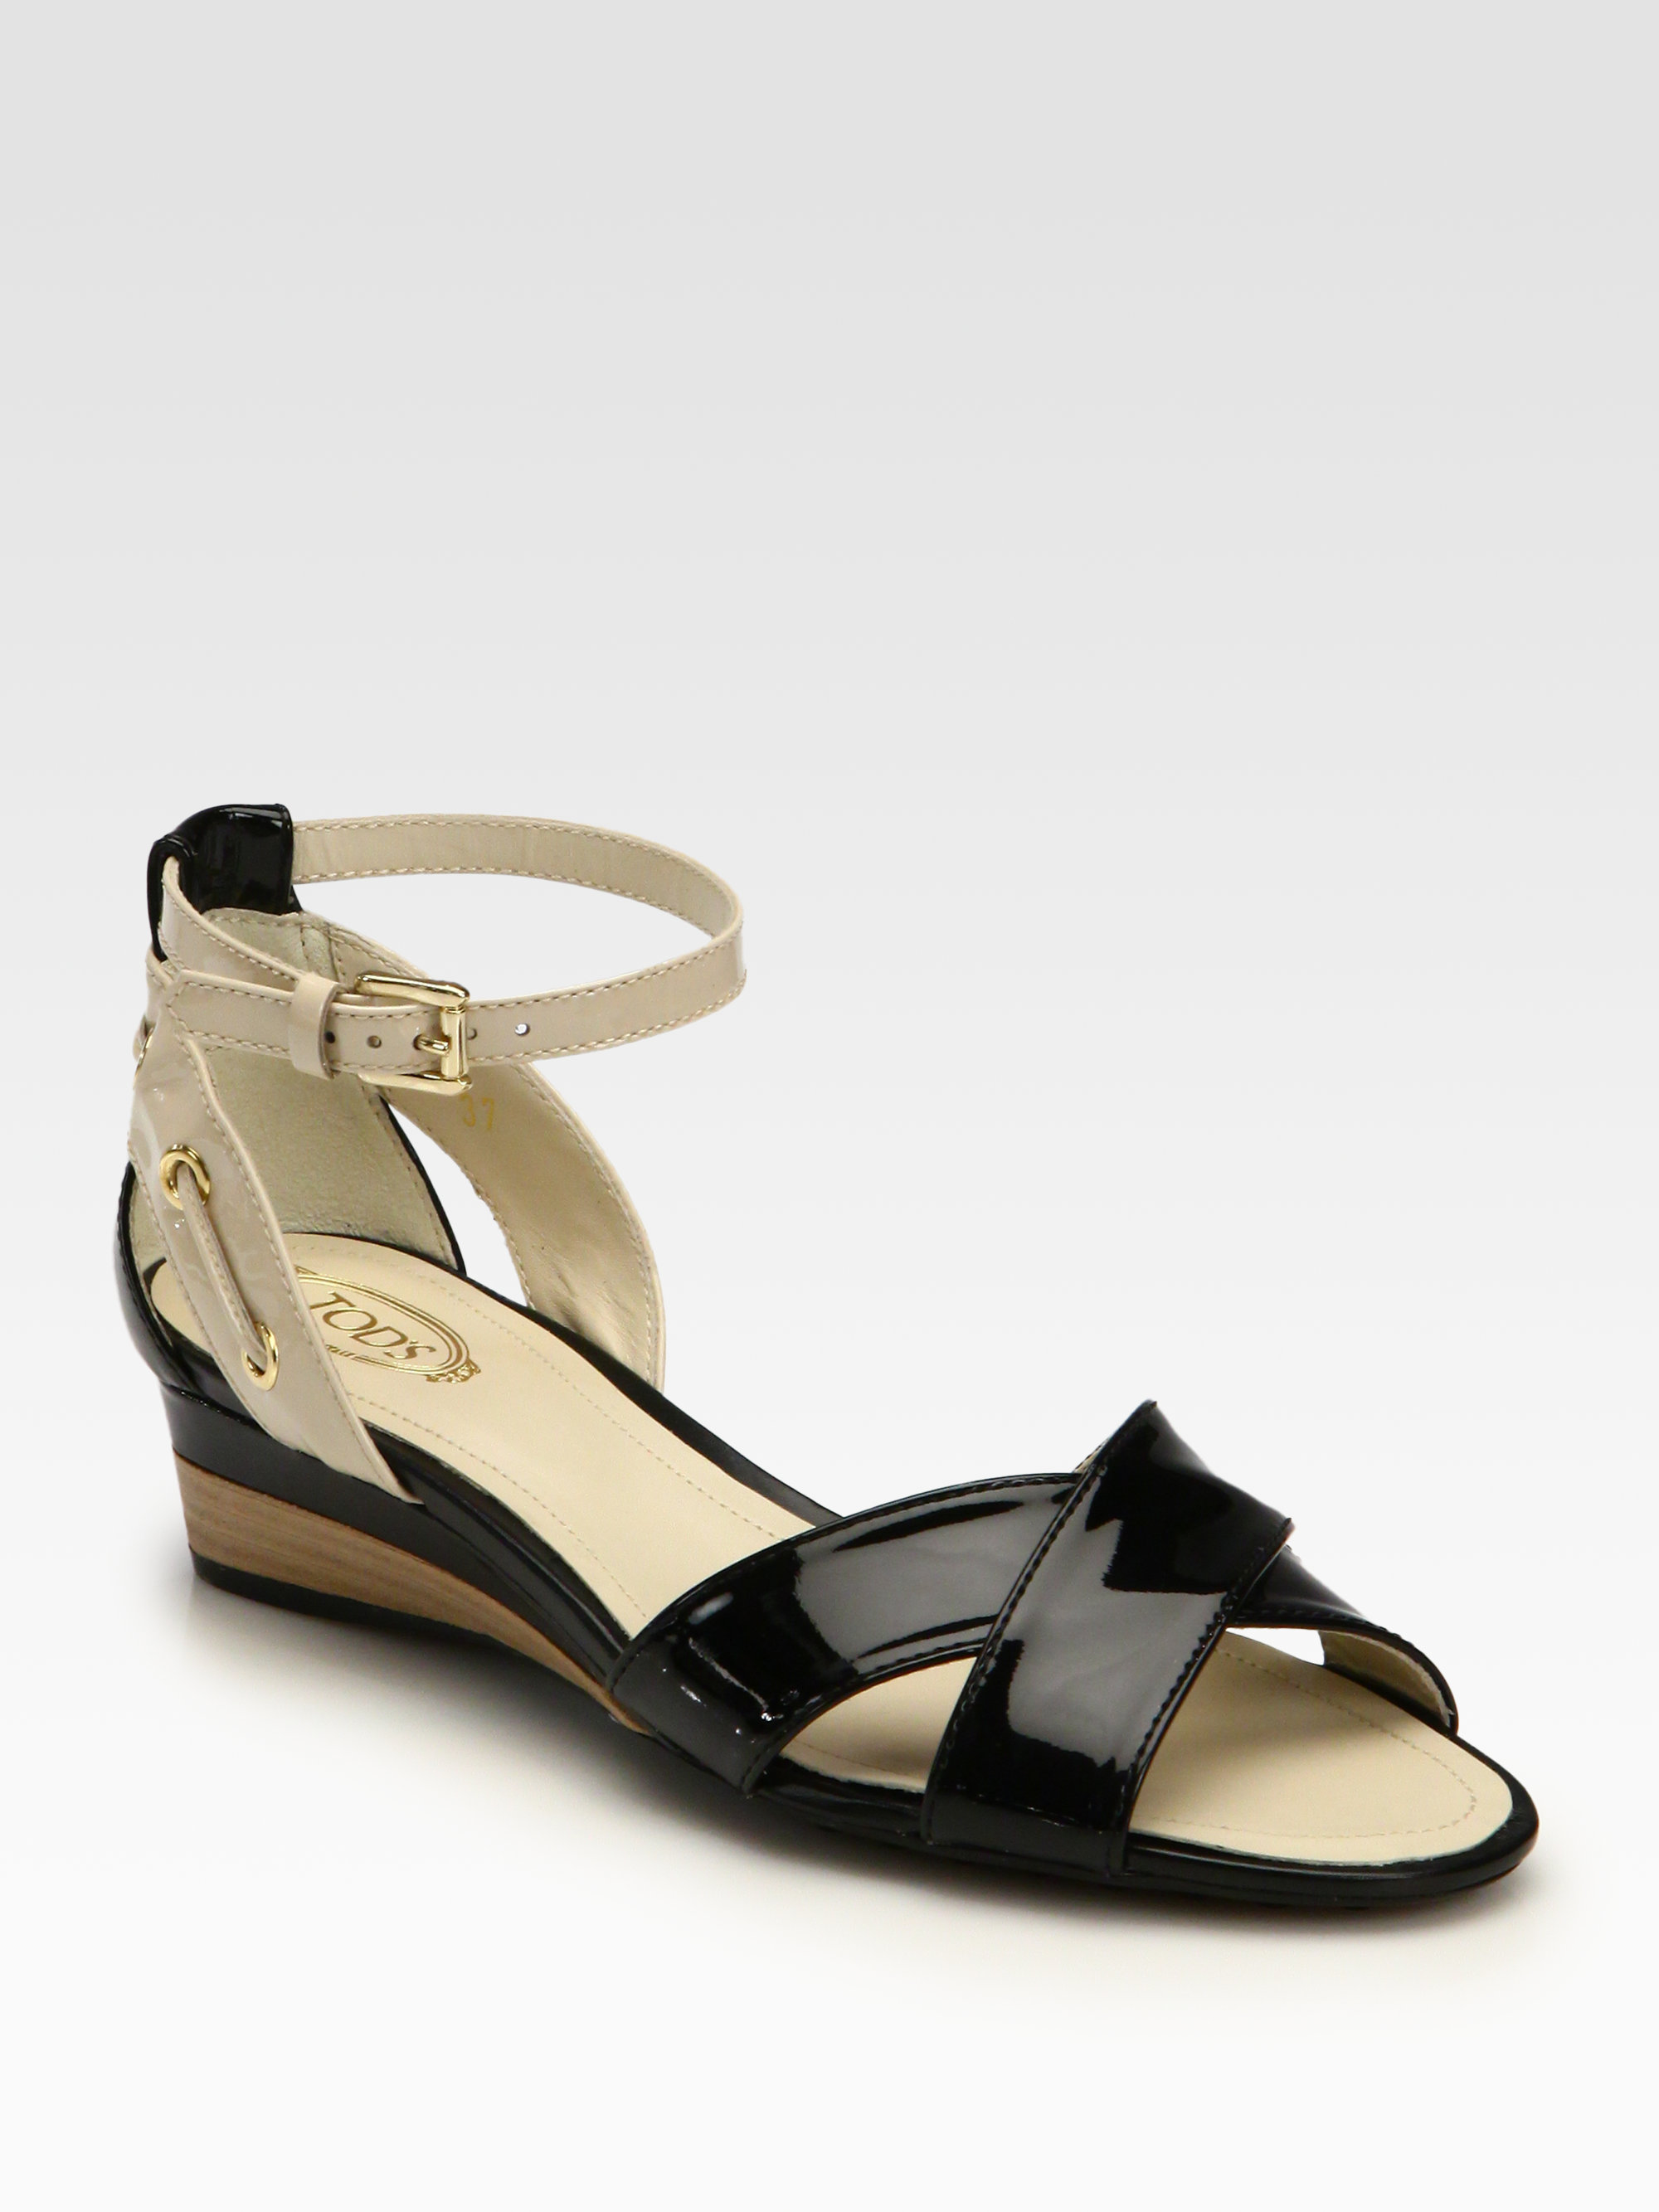 cheap footlocker buy cheap supply Tod's Leather Slingback Wedges cost 4V2EpxB2mZ